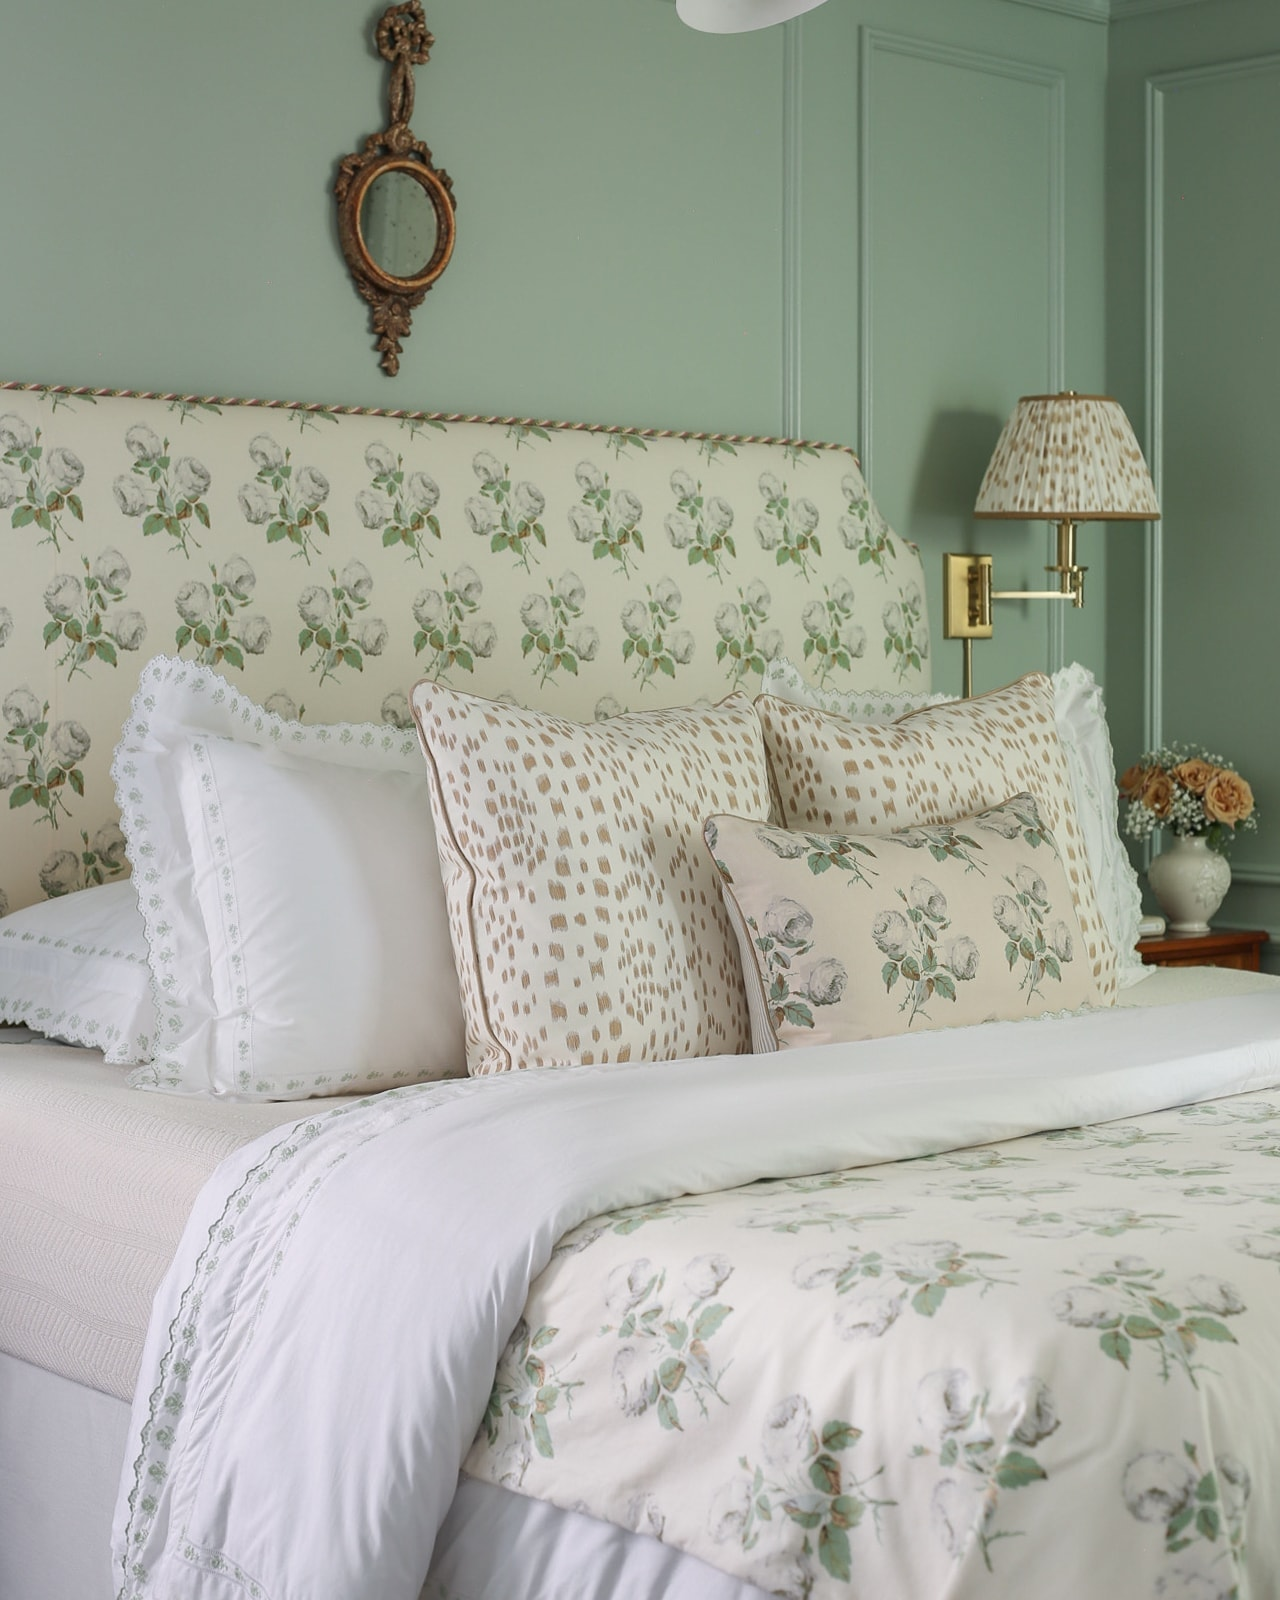 les-touches-bowood-bedroom-design-pillows-traditional-bedroom